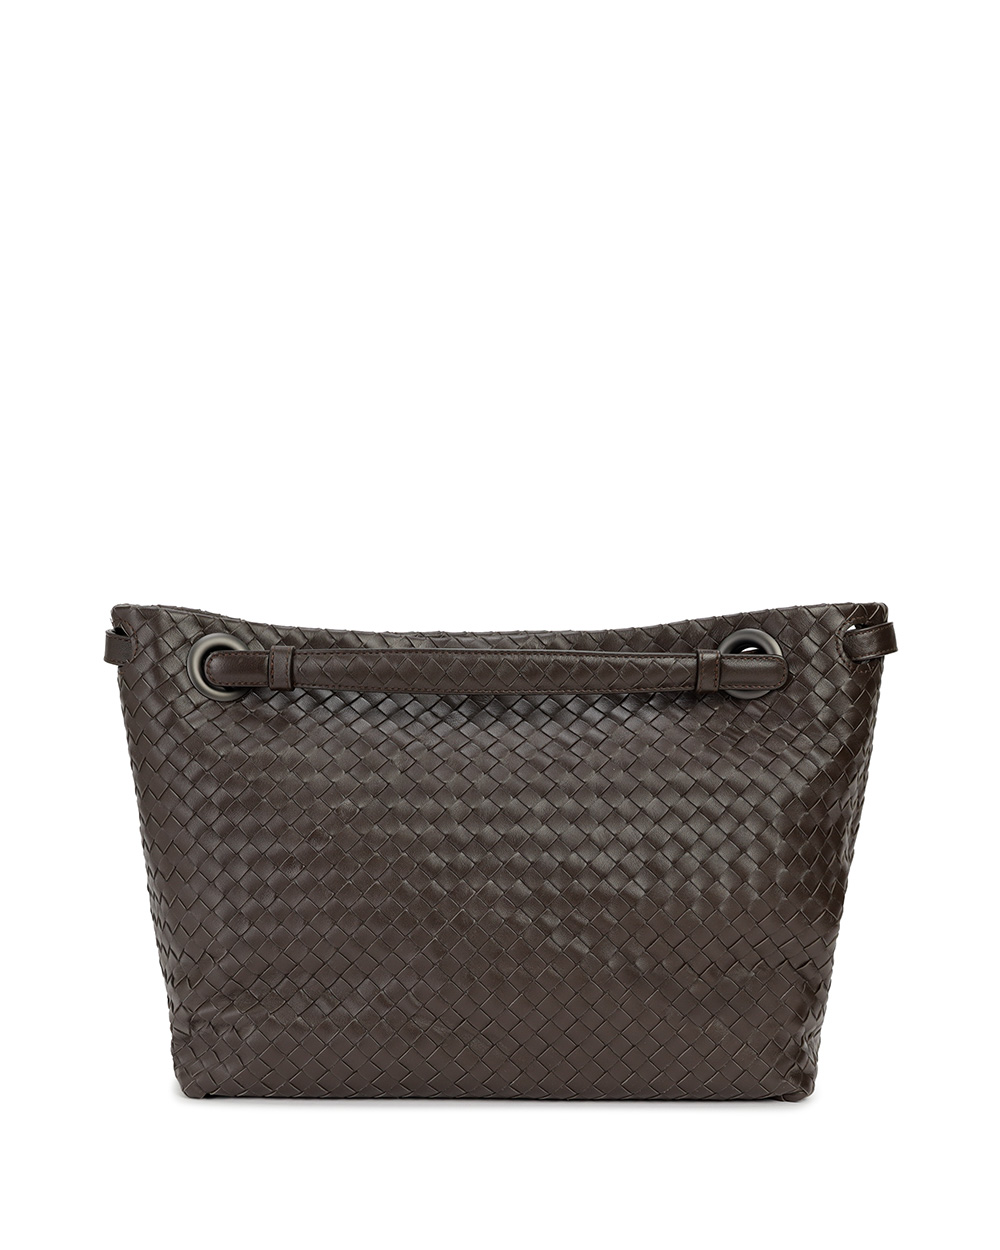 Woven Leather Tote Bag 3